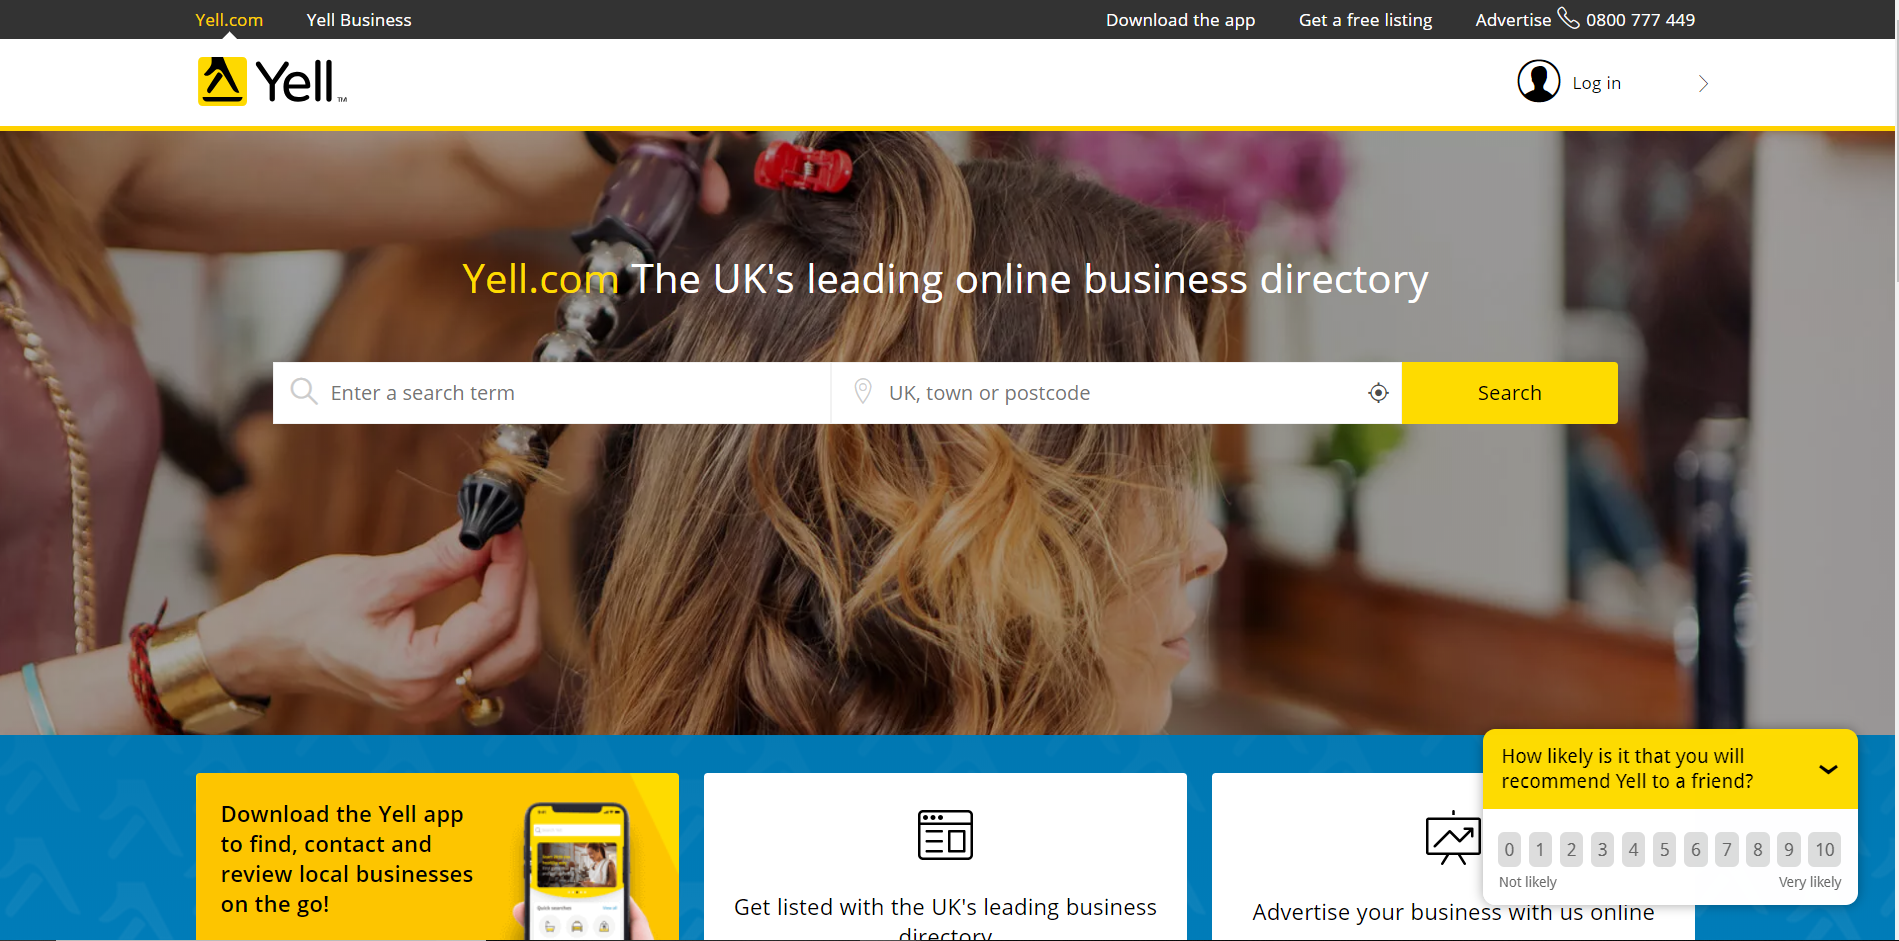 yell yellow pages review website for plumbing and heating company